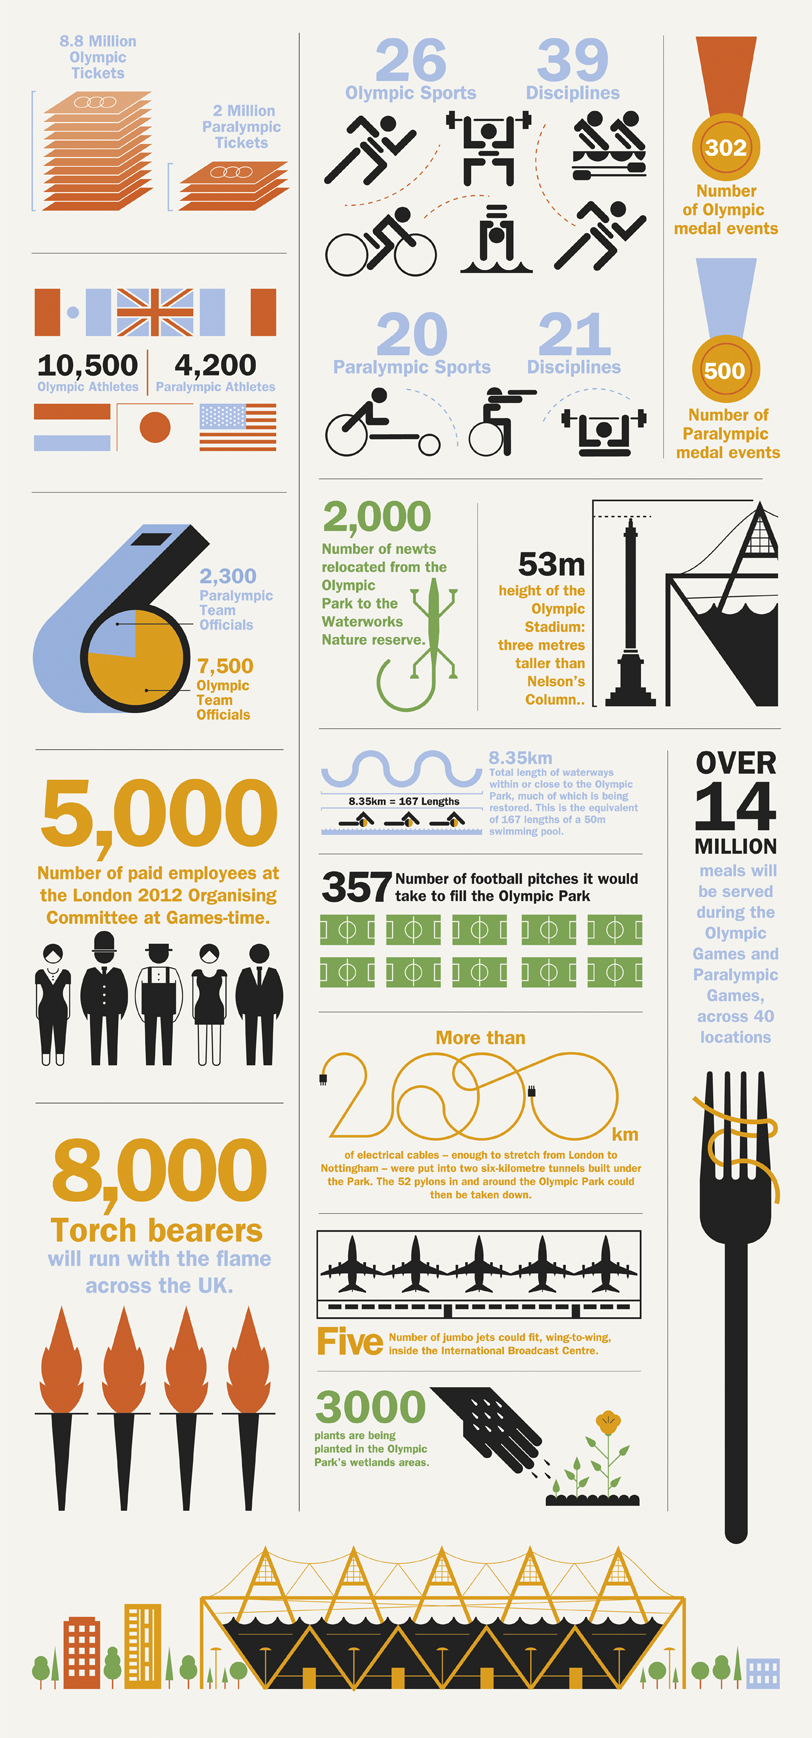 economic impact of sport events When considering the full economic impact of sports in lane county, the first events that come to mind involve the university of oregon athletics program understanding the full impact of sporting events on lane county's economy requires understanding how varied the sporting culture is in the.